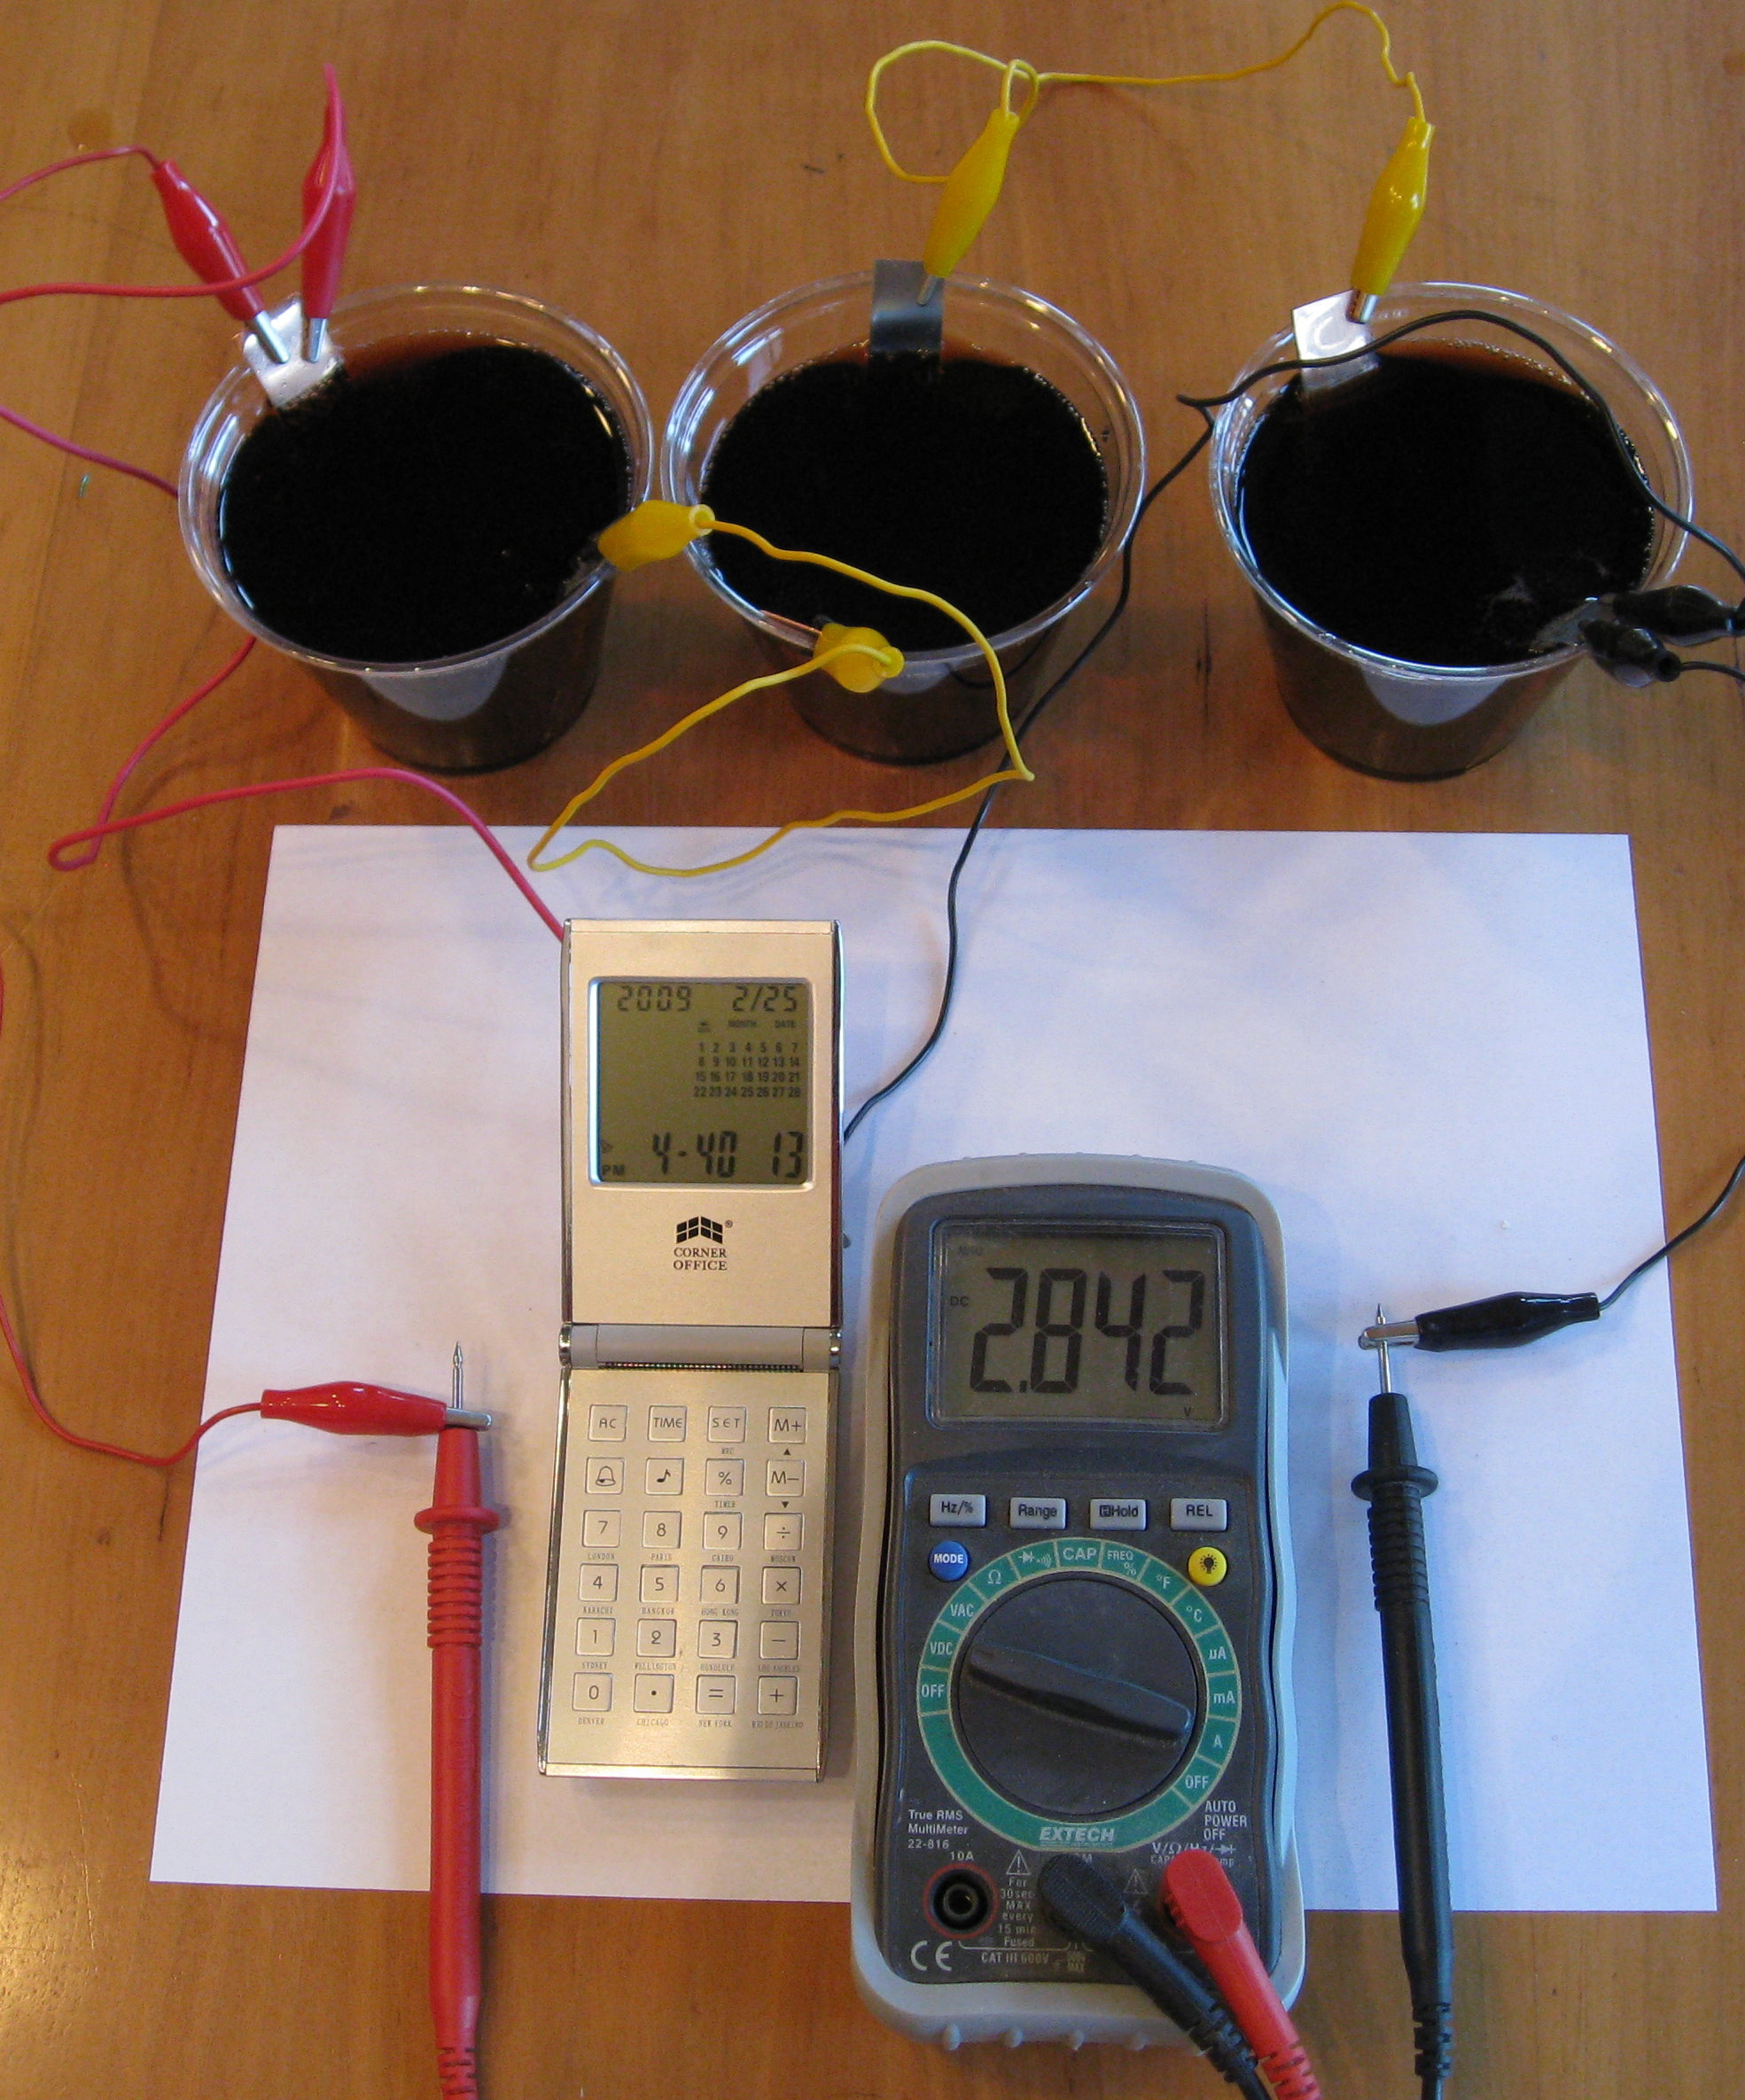 Chapter 3 Electrochemistry Make Homemade Batteries In Your Kitchen The Simple Electric Motor Powered By Two Connected Series